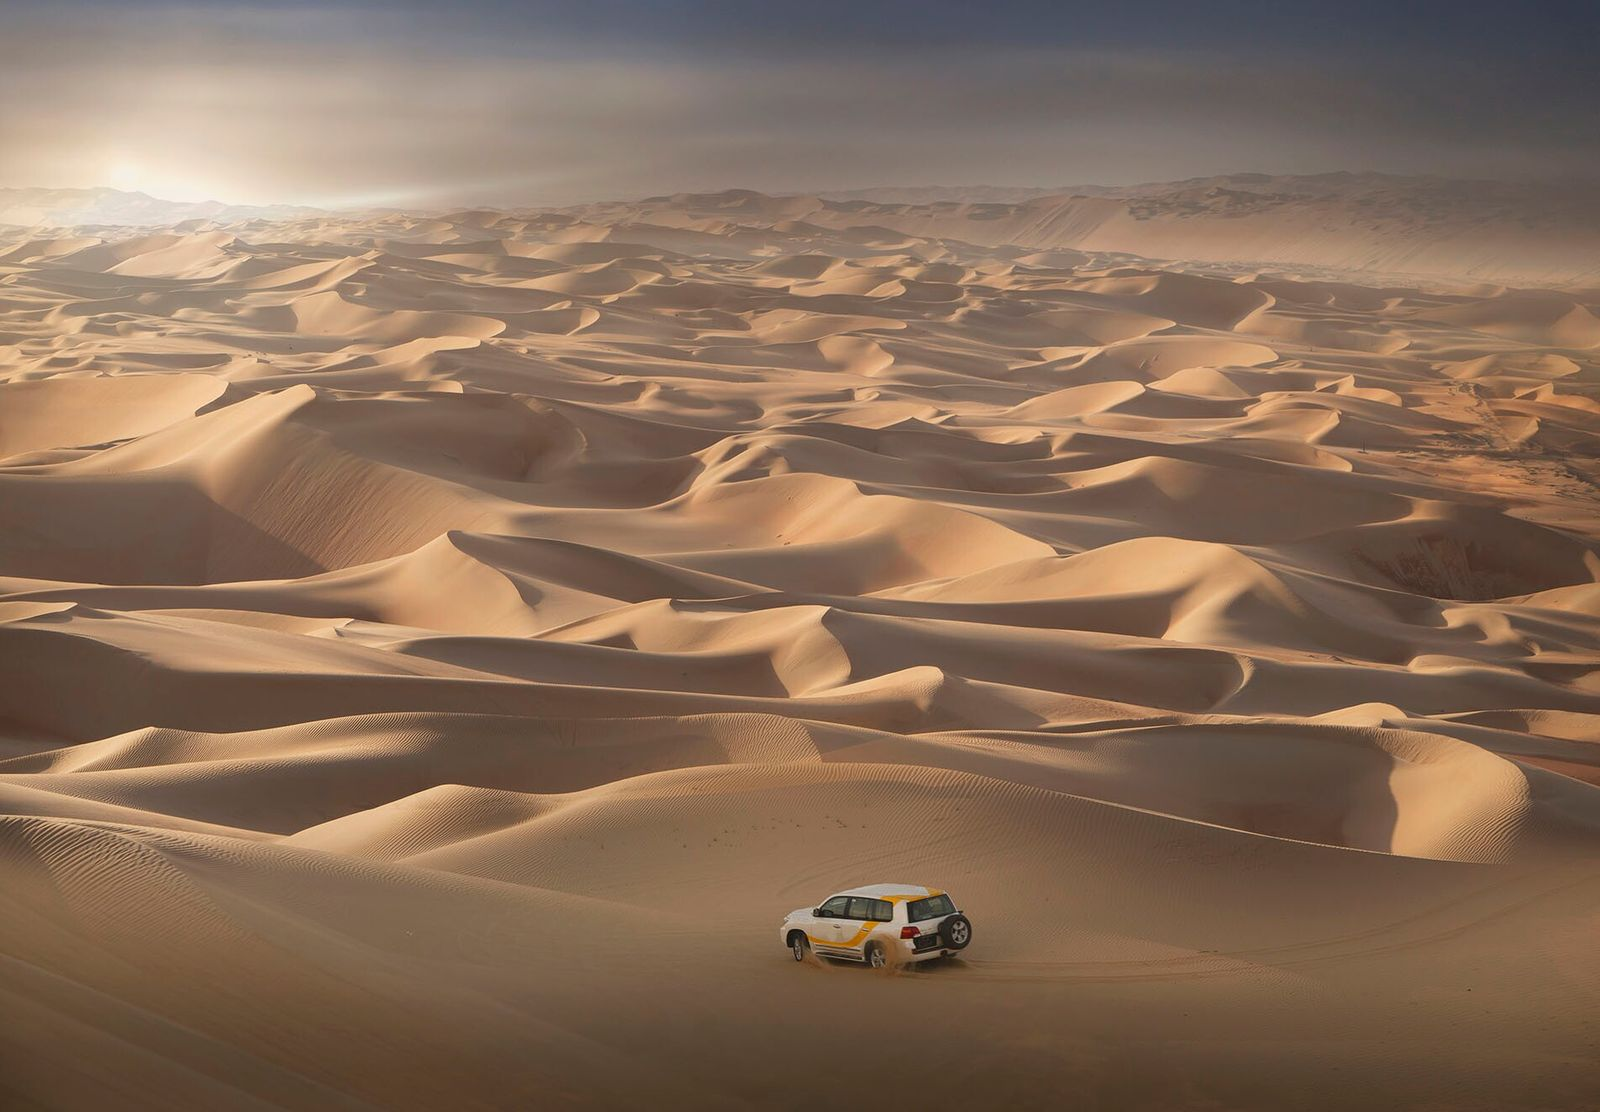 Oman is home to the highest sand dune in the world, the Ramlat Jadilah, which measures a staggering 1,492ft.